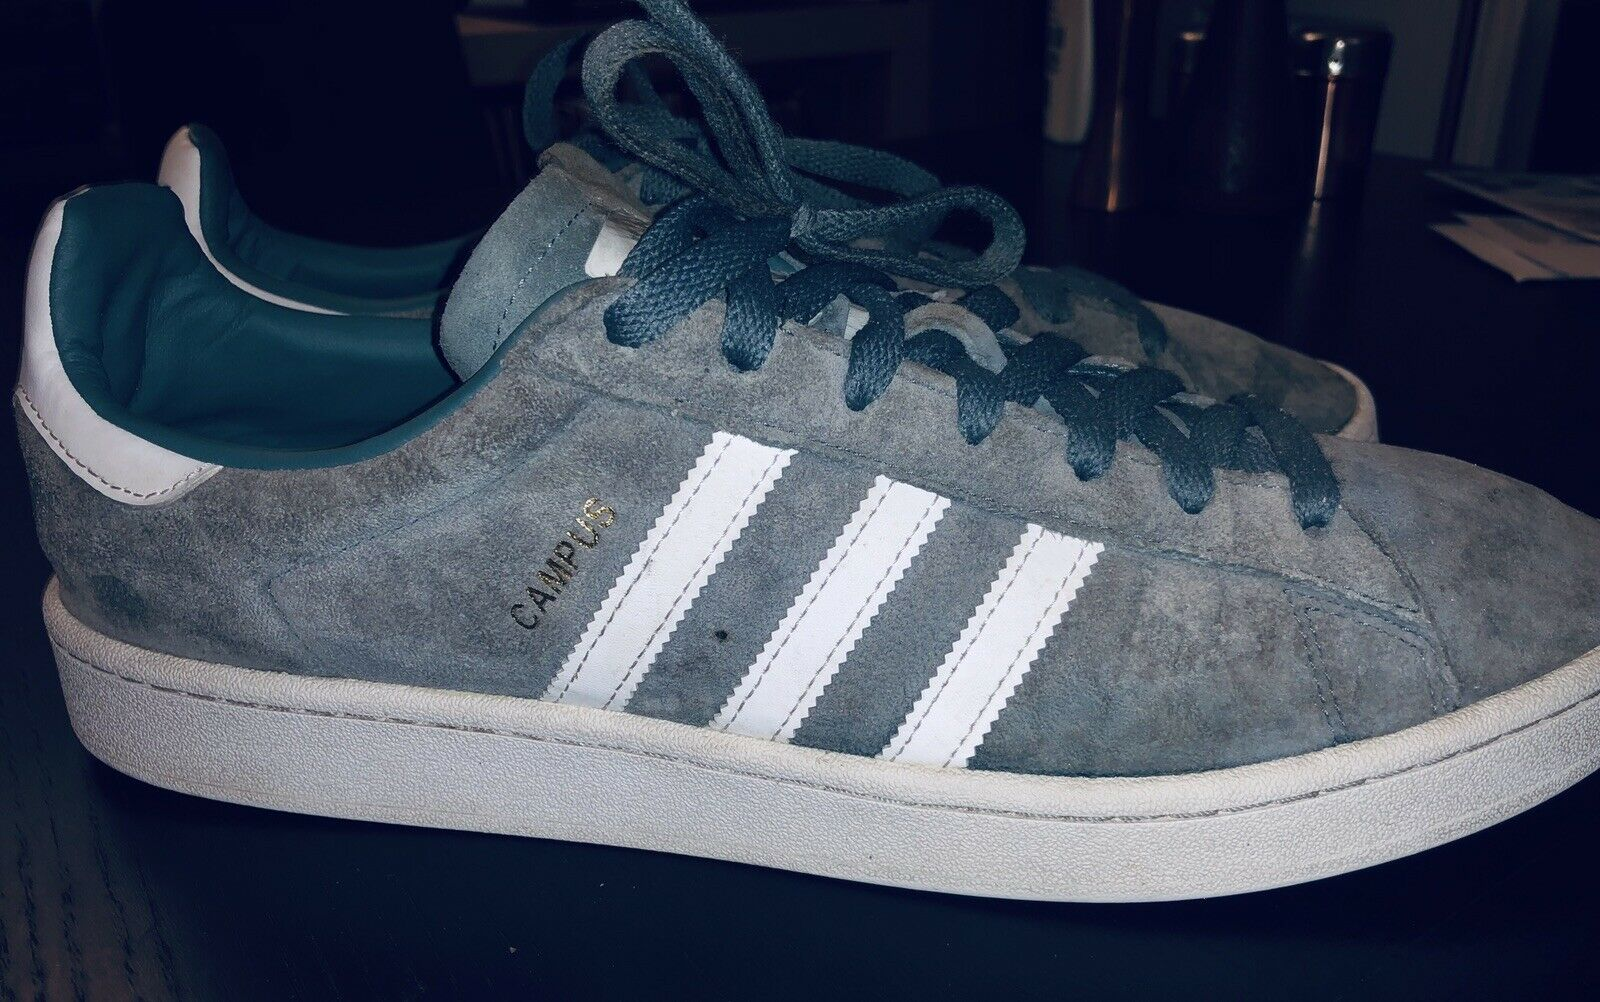 separation shoes f3bf6 8cb3d New ADIDAS Originals Mens Stan Smith ICE BLUE Sneakers 12.5 Blue Suede Shoes